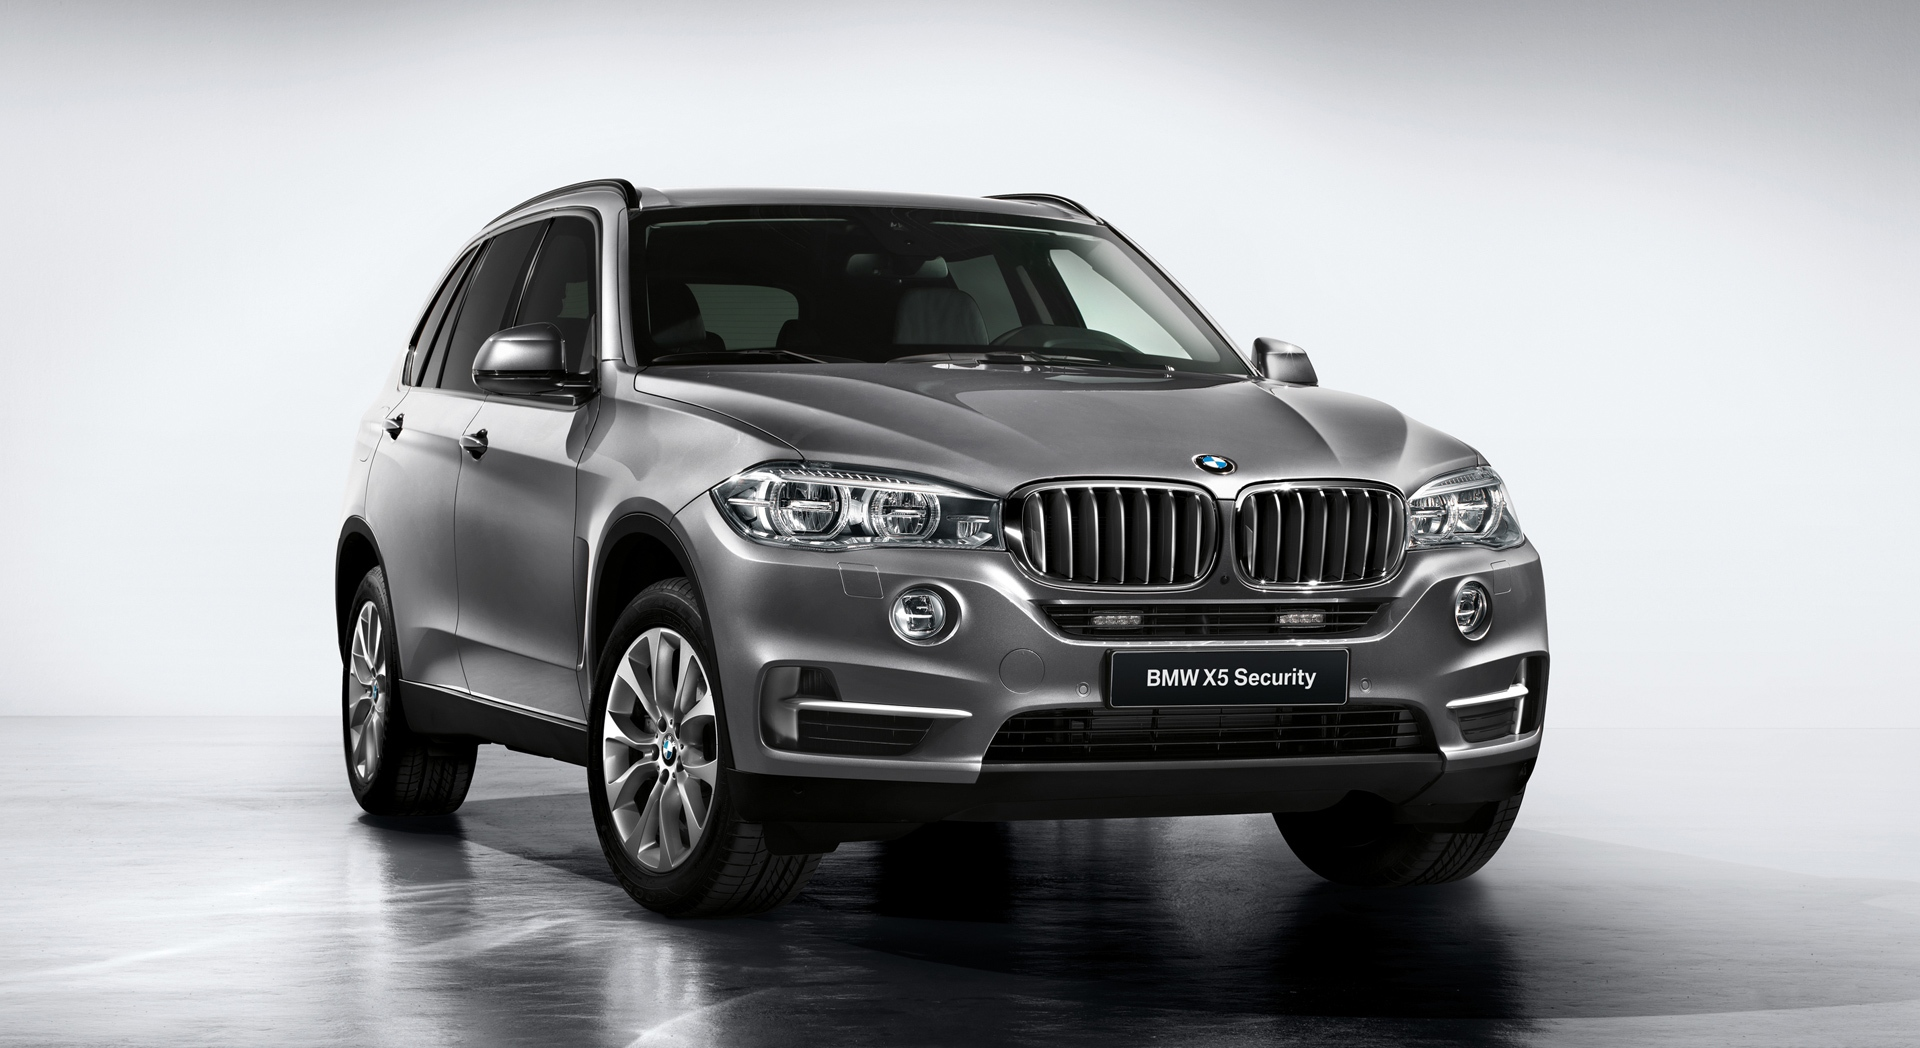 Bmw X5 Dimensions Bmw X5 M And X6 M Launched Pricing Specifications And Sales Photos 1 Of 8